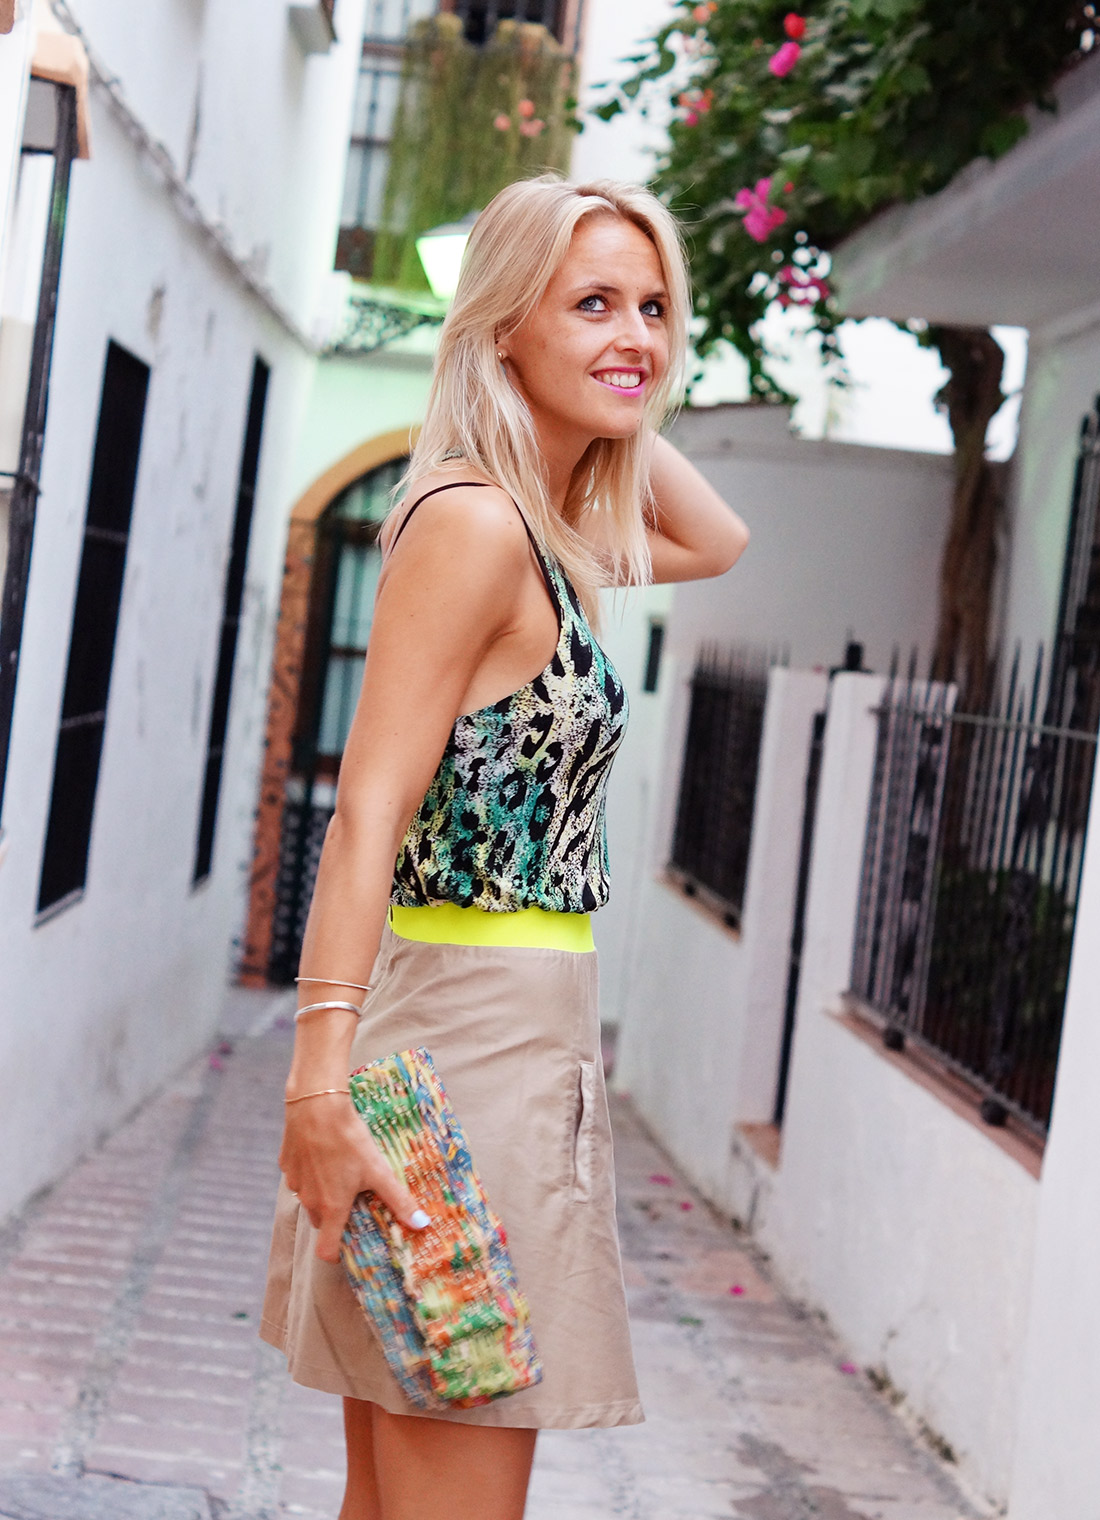 Bag-at-you---Fashion-blog---walking-through-the-Andalusian-alleys-in-Marbella-Spain